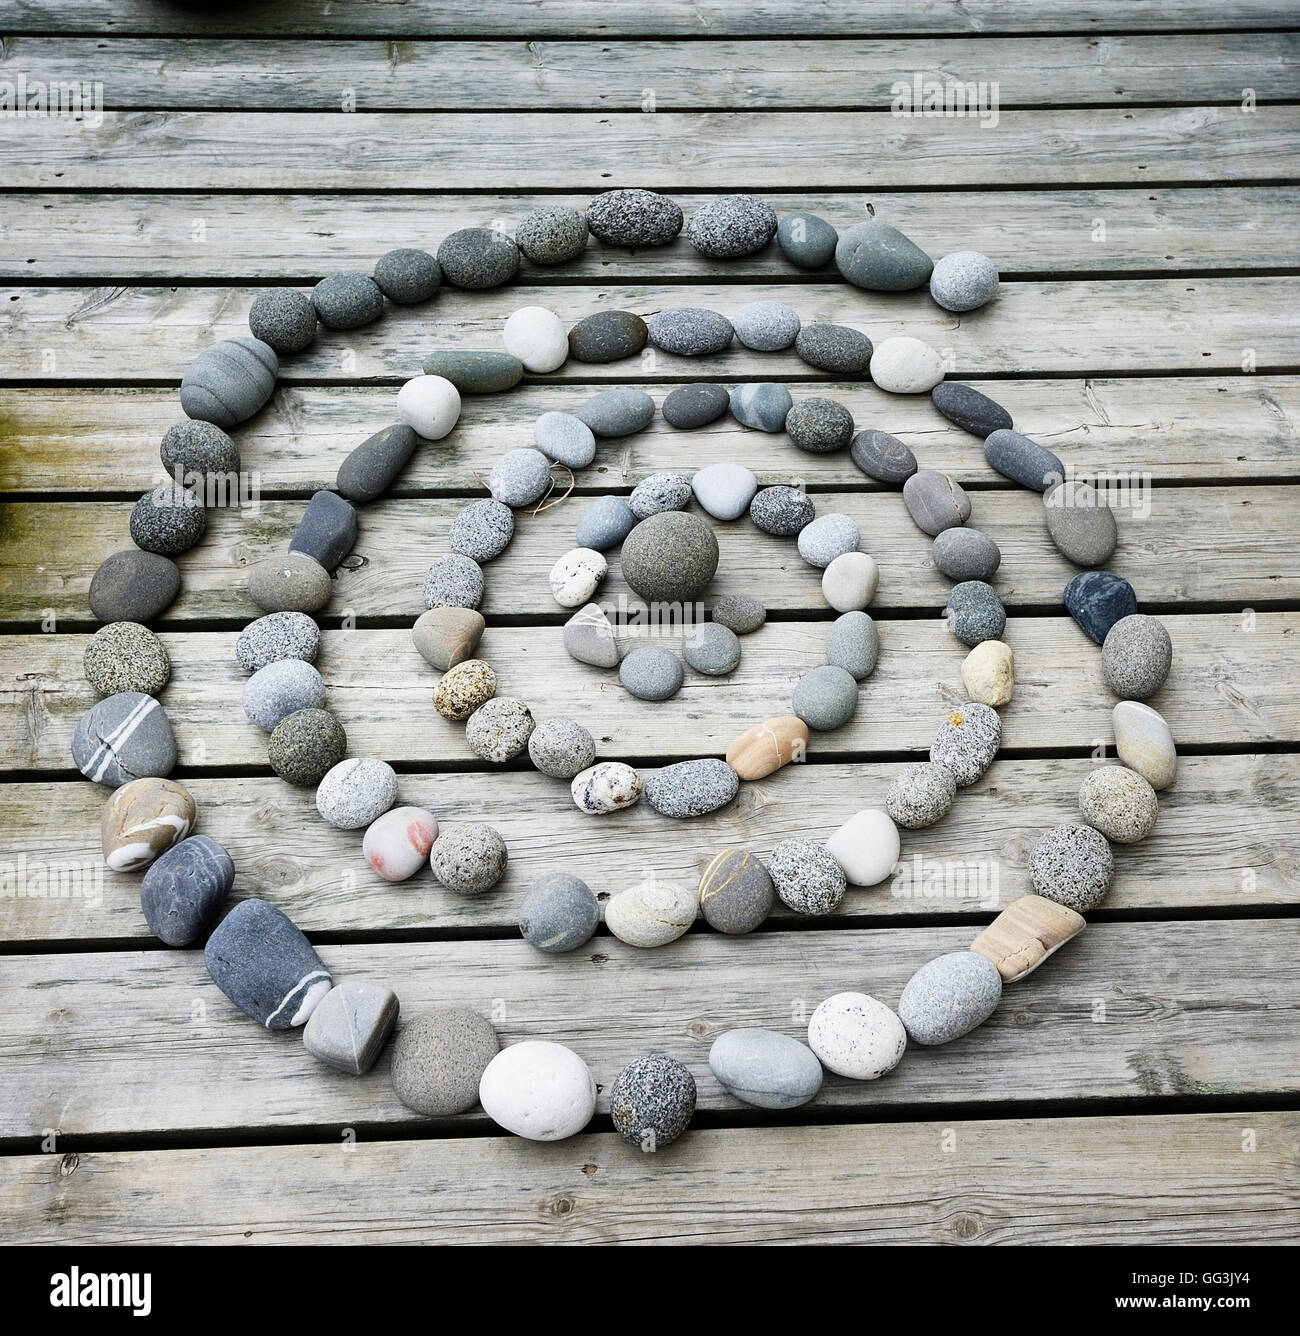 Concentric cirlce made up of pebbles - Stock Image